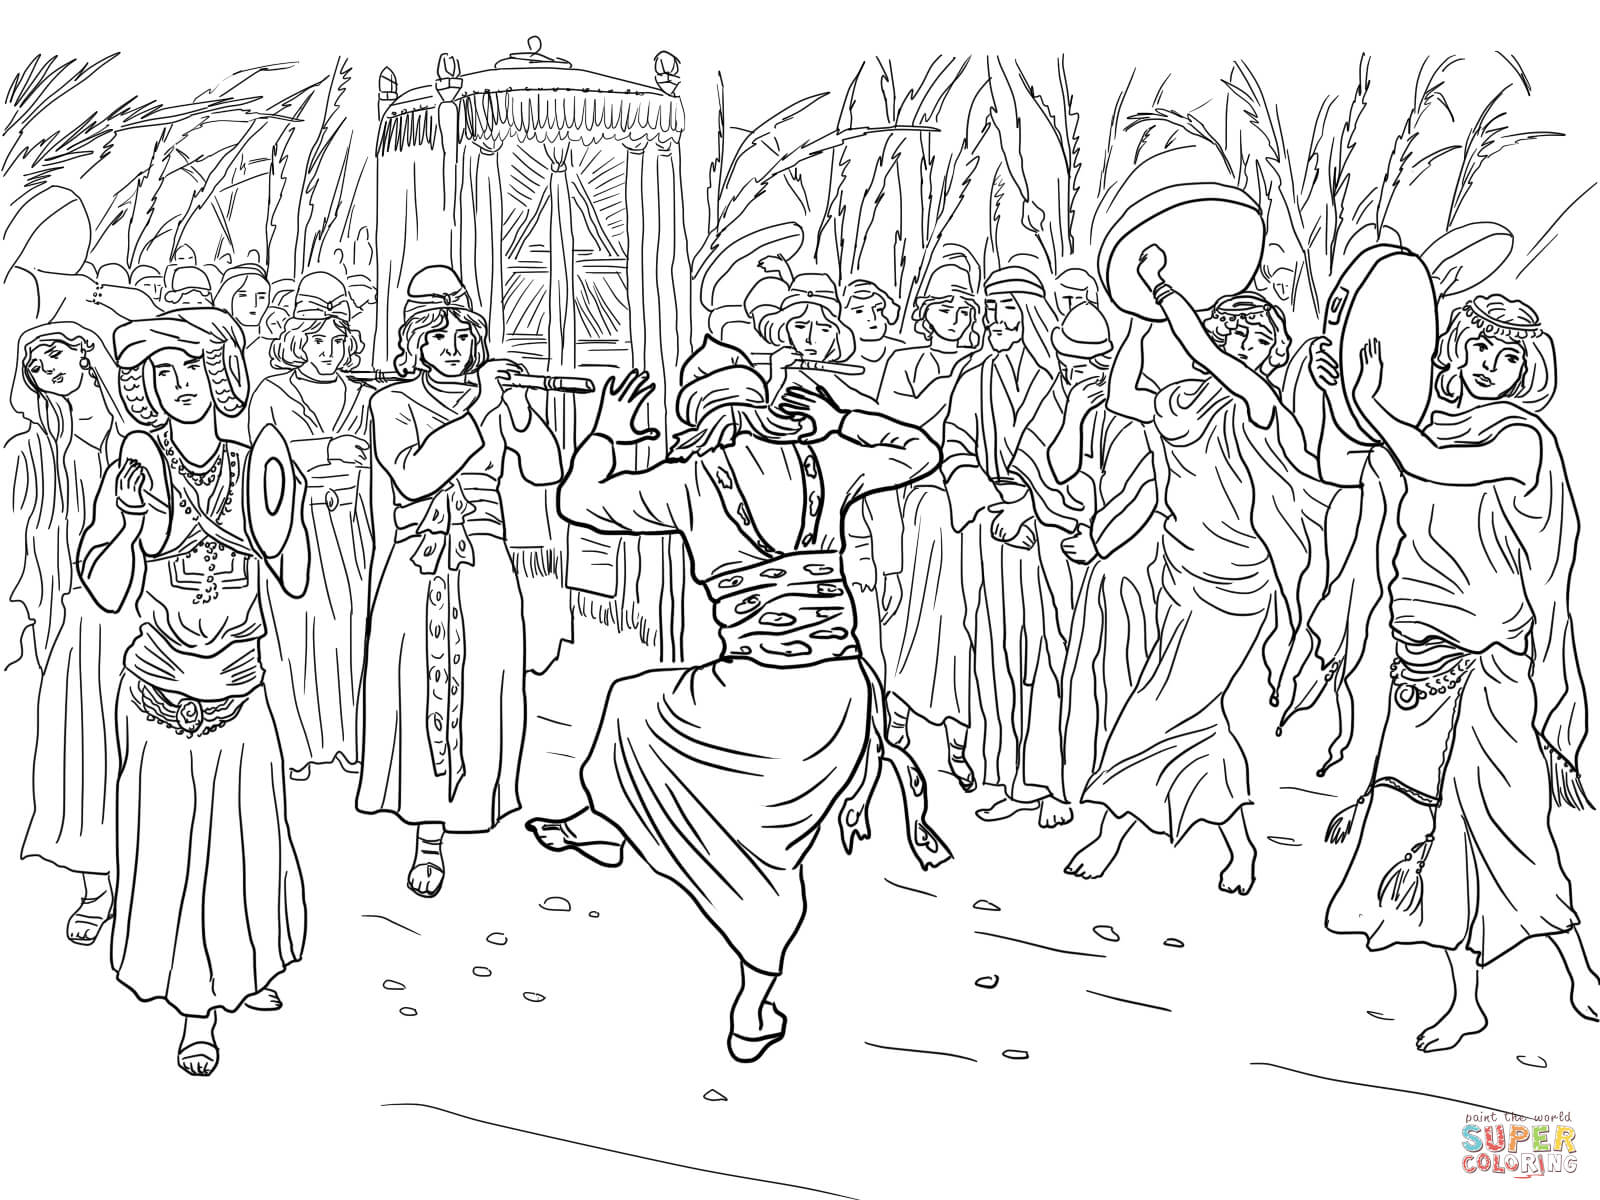 King david dancing before the ark of the covenant coloring online